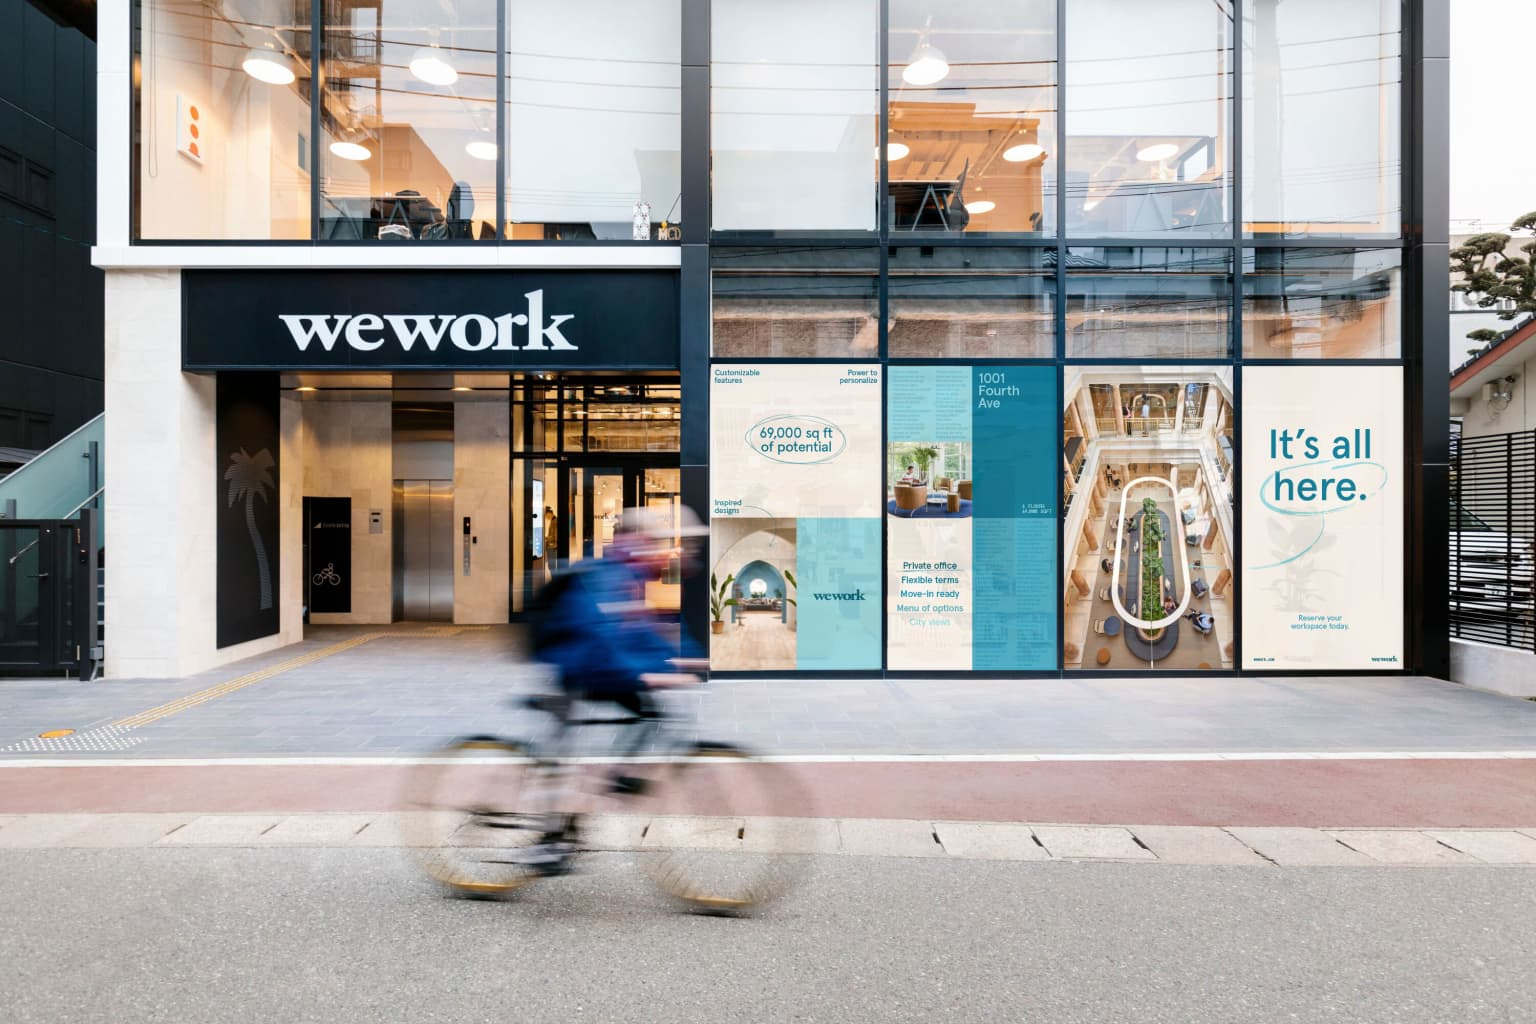 It's All Here Campaign—WeWork